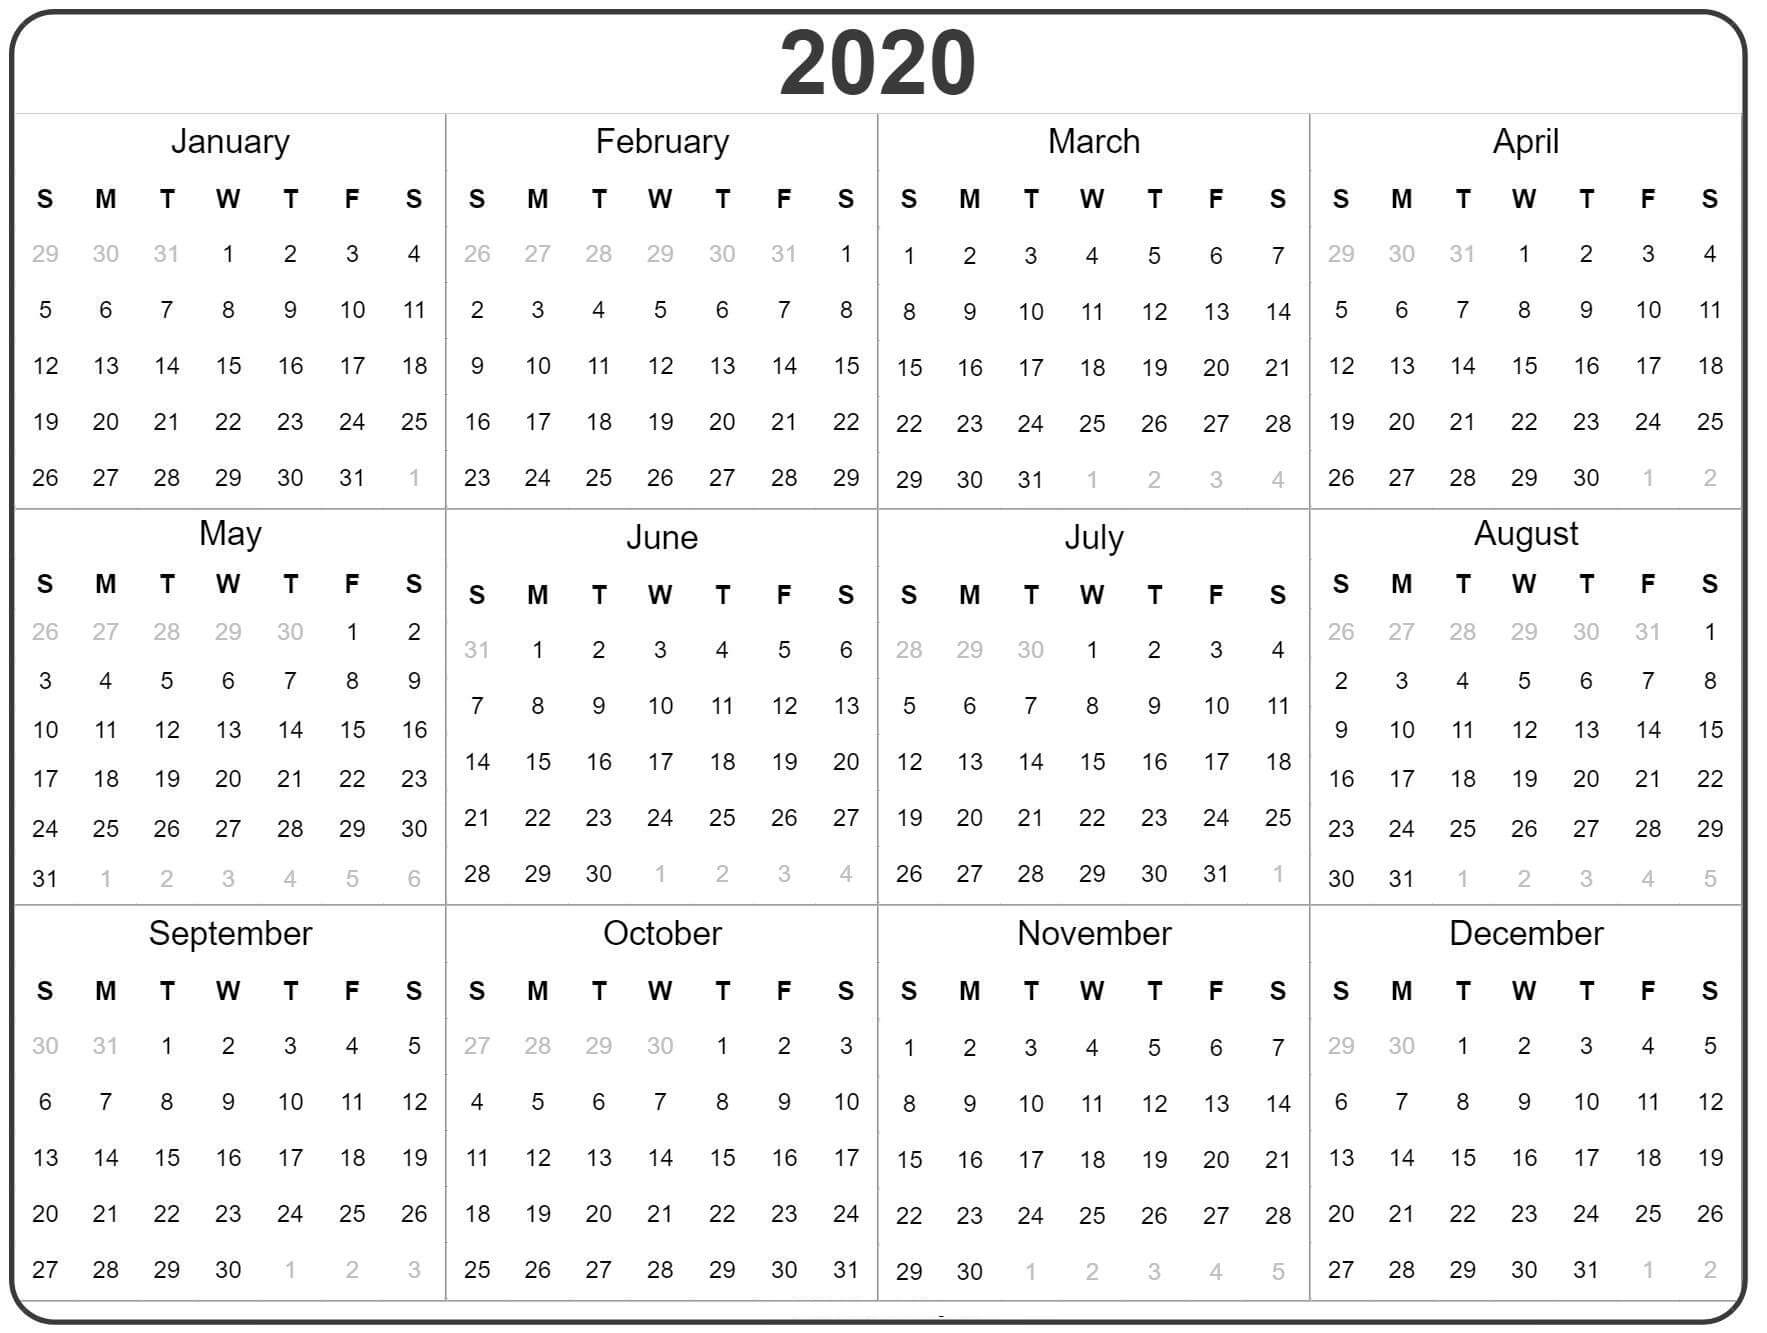 Free Yearly Calendar 2020 With Notes - 2019 Calendars For with Year Ata Glance 2020 Calendar